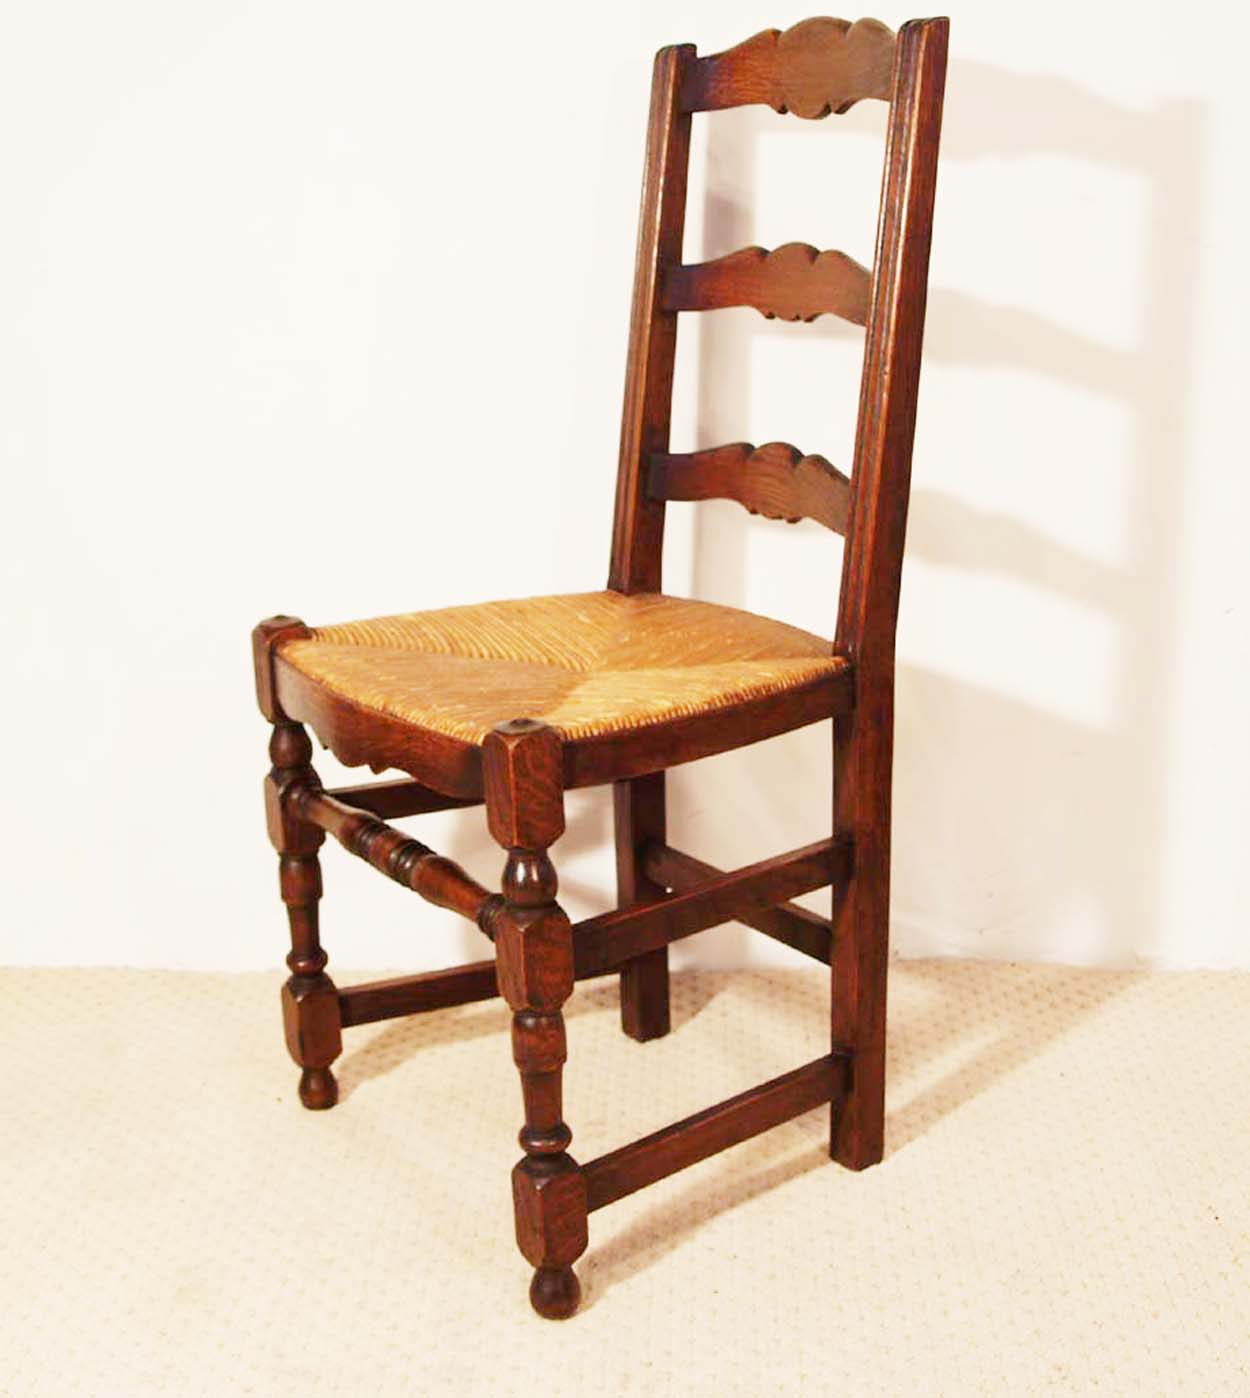 French Antique Oak Turned Leg Ladder Back Chairs - Shop Luxury Antique Vintage French Chair - Wildwoodantiques.co.uk